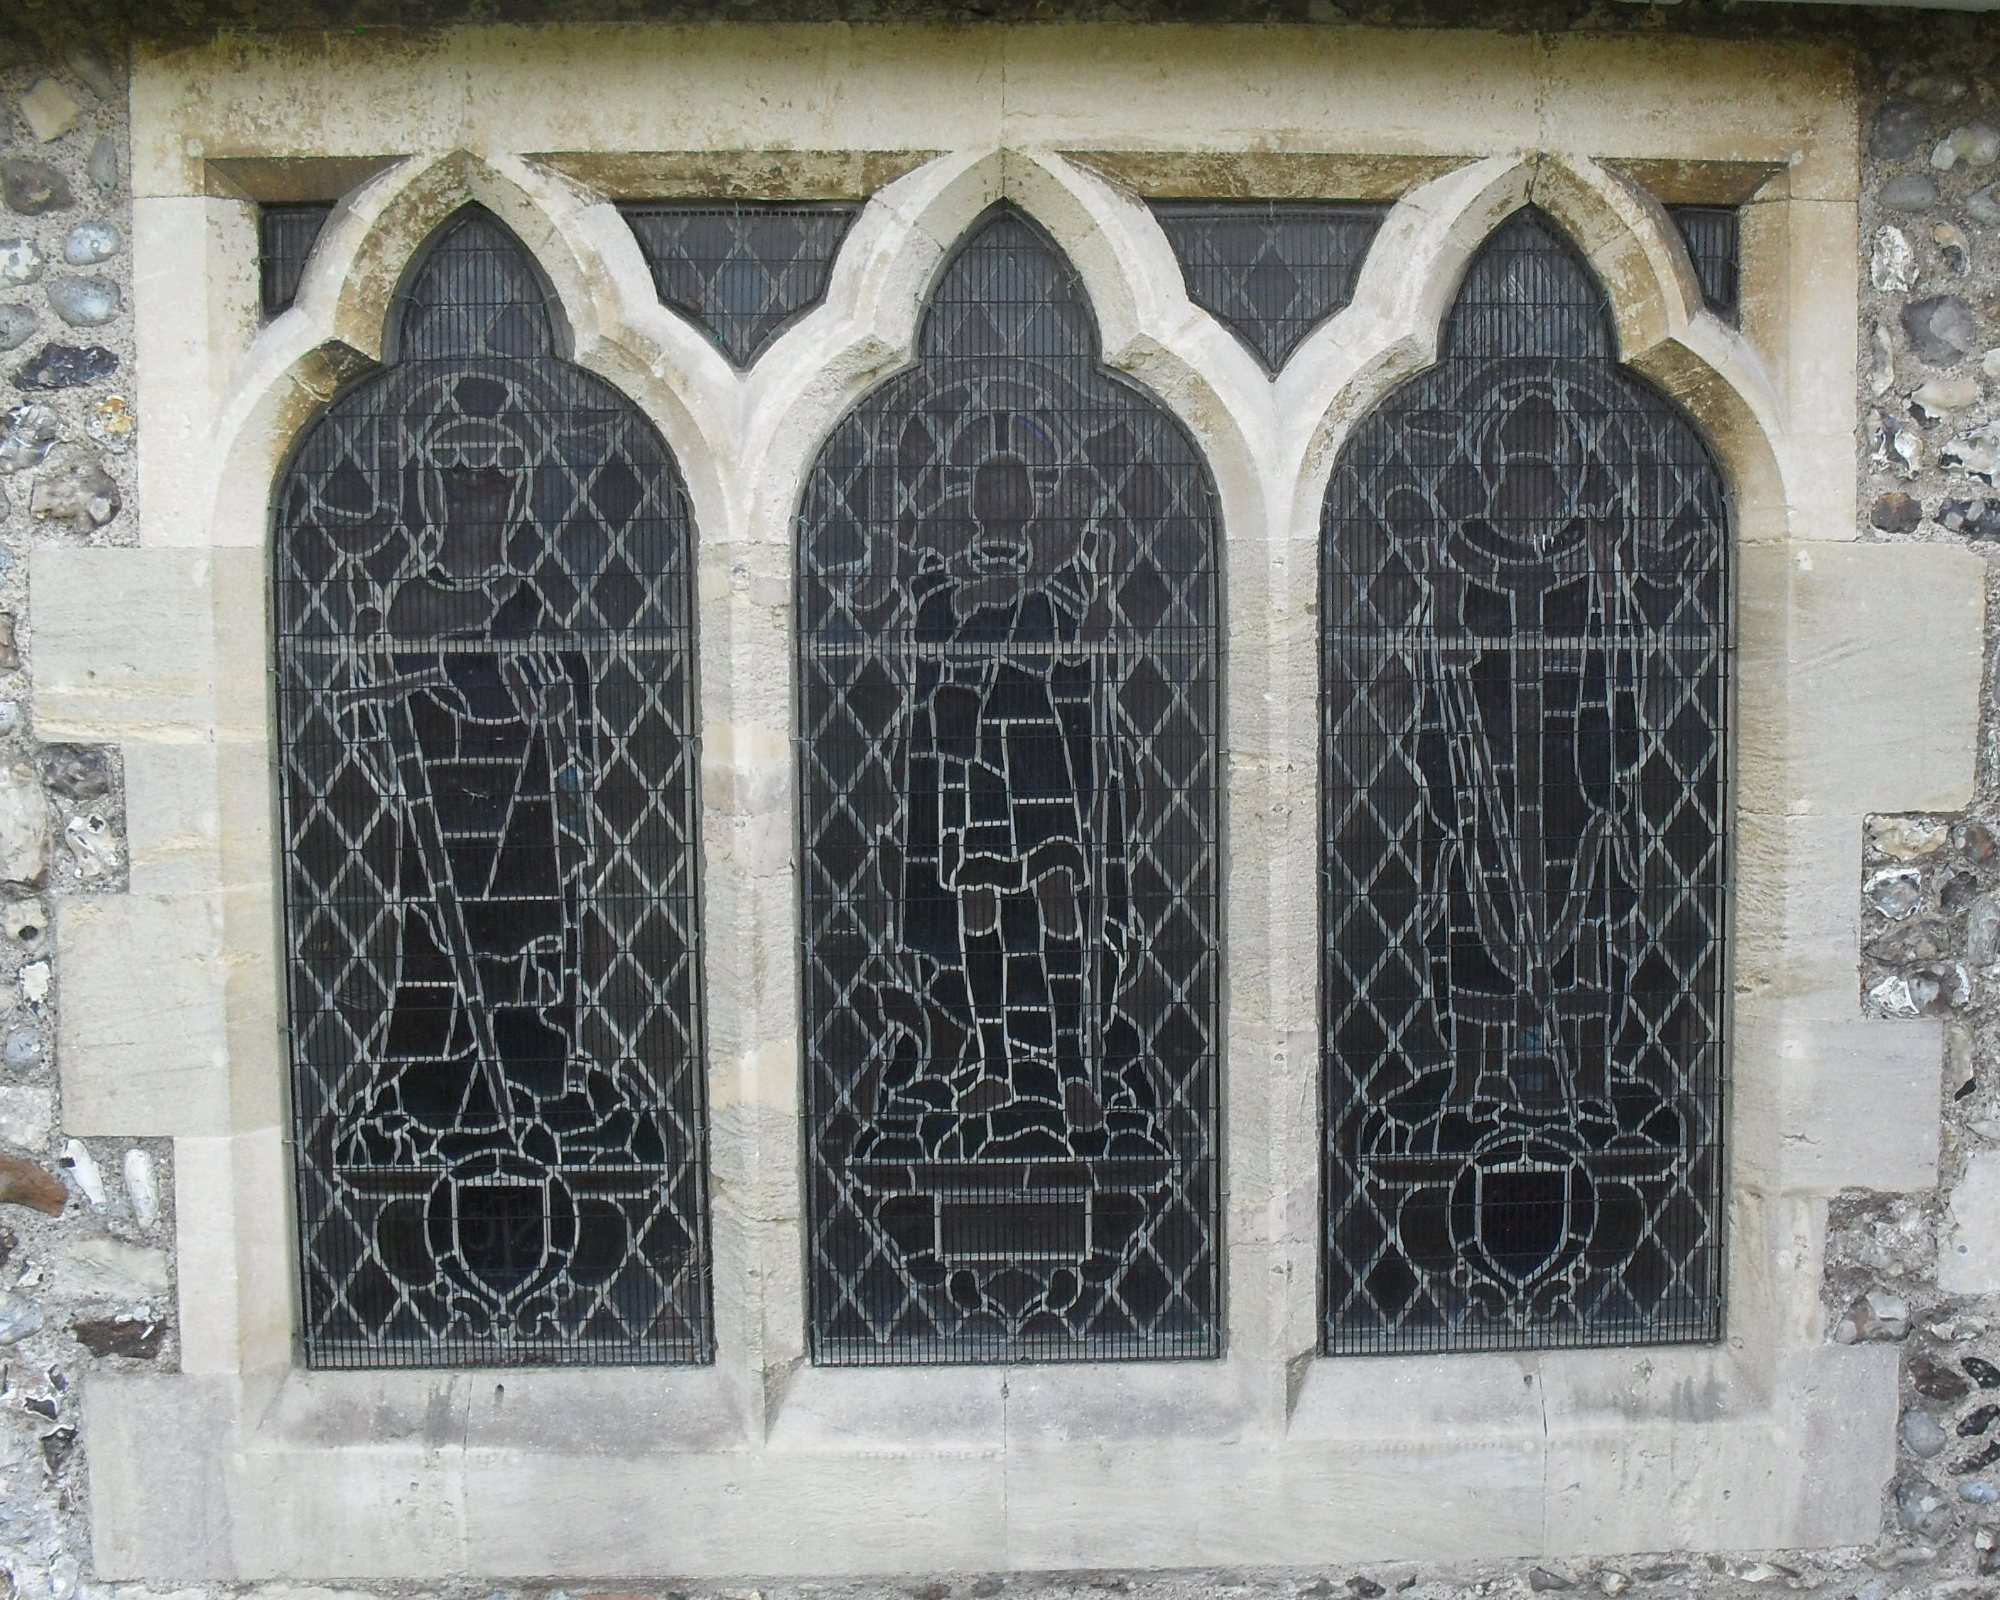 FileStained Glass Window By Cox Barnard St Leonards Church Seaford